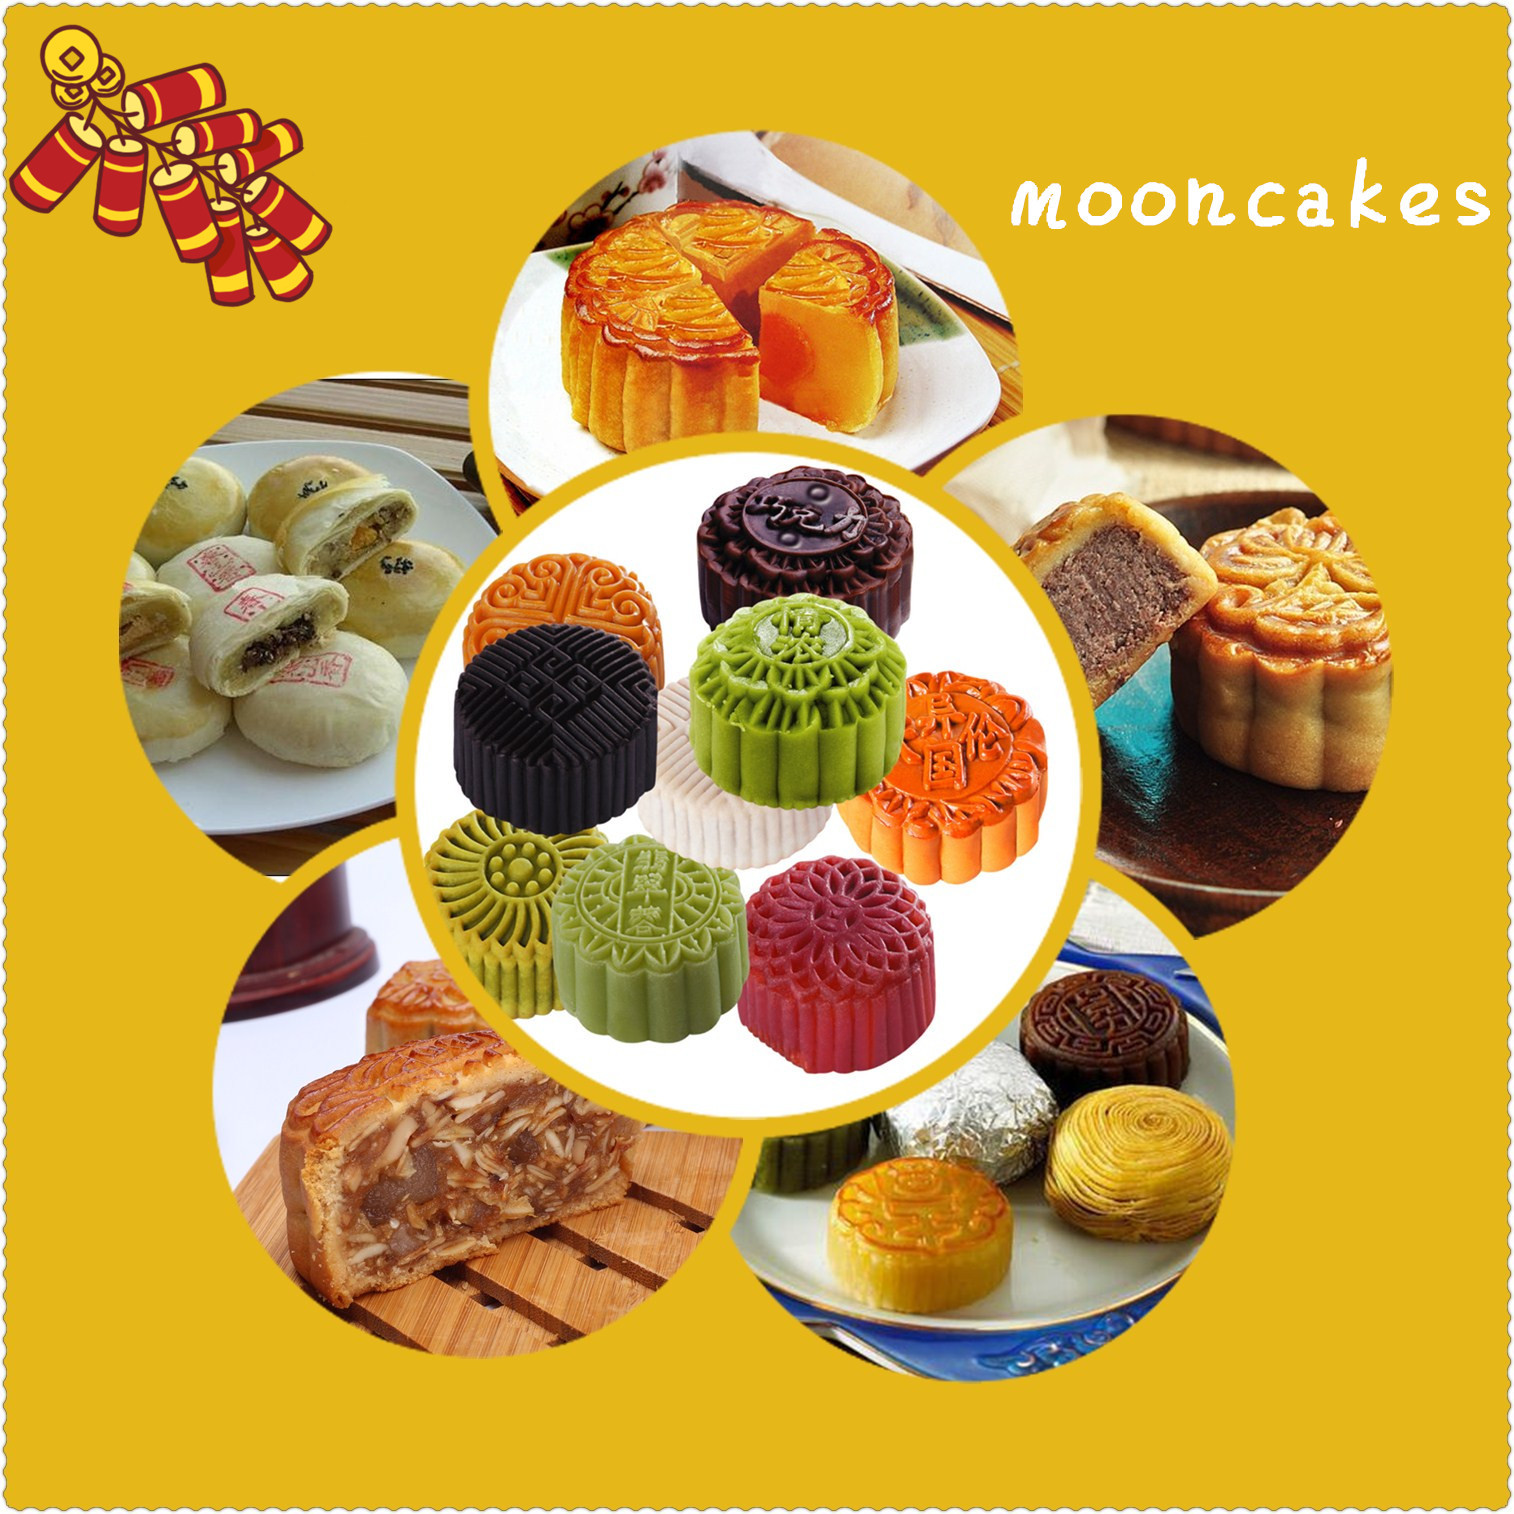 In ancient times, moon cakes were a kind of offering to the moon. Over the centuries, these special cakes have become the most popular food of the Mid-Autumn Festival. The types of moon cakes are becoming more and more diverse. There are five kernels, bean paste, rose, lotus seed paste, sugar, black sesame, ginkgo, dried meat floss, ham ,yolk moon cakes, etc.. So which kind of moon cake is your favorite?